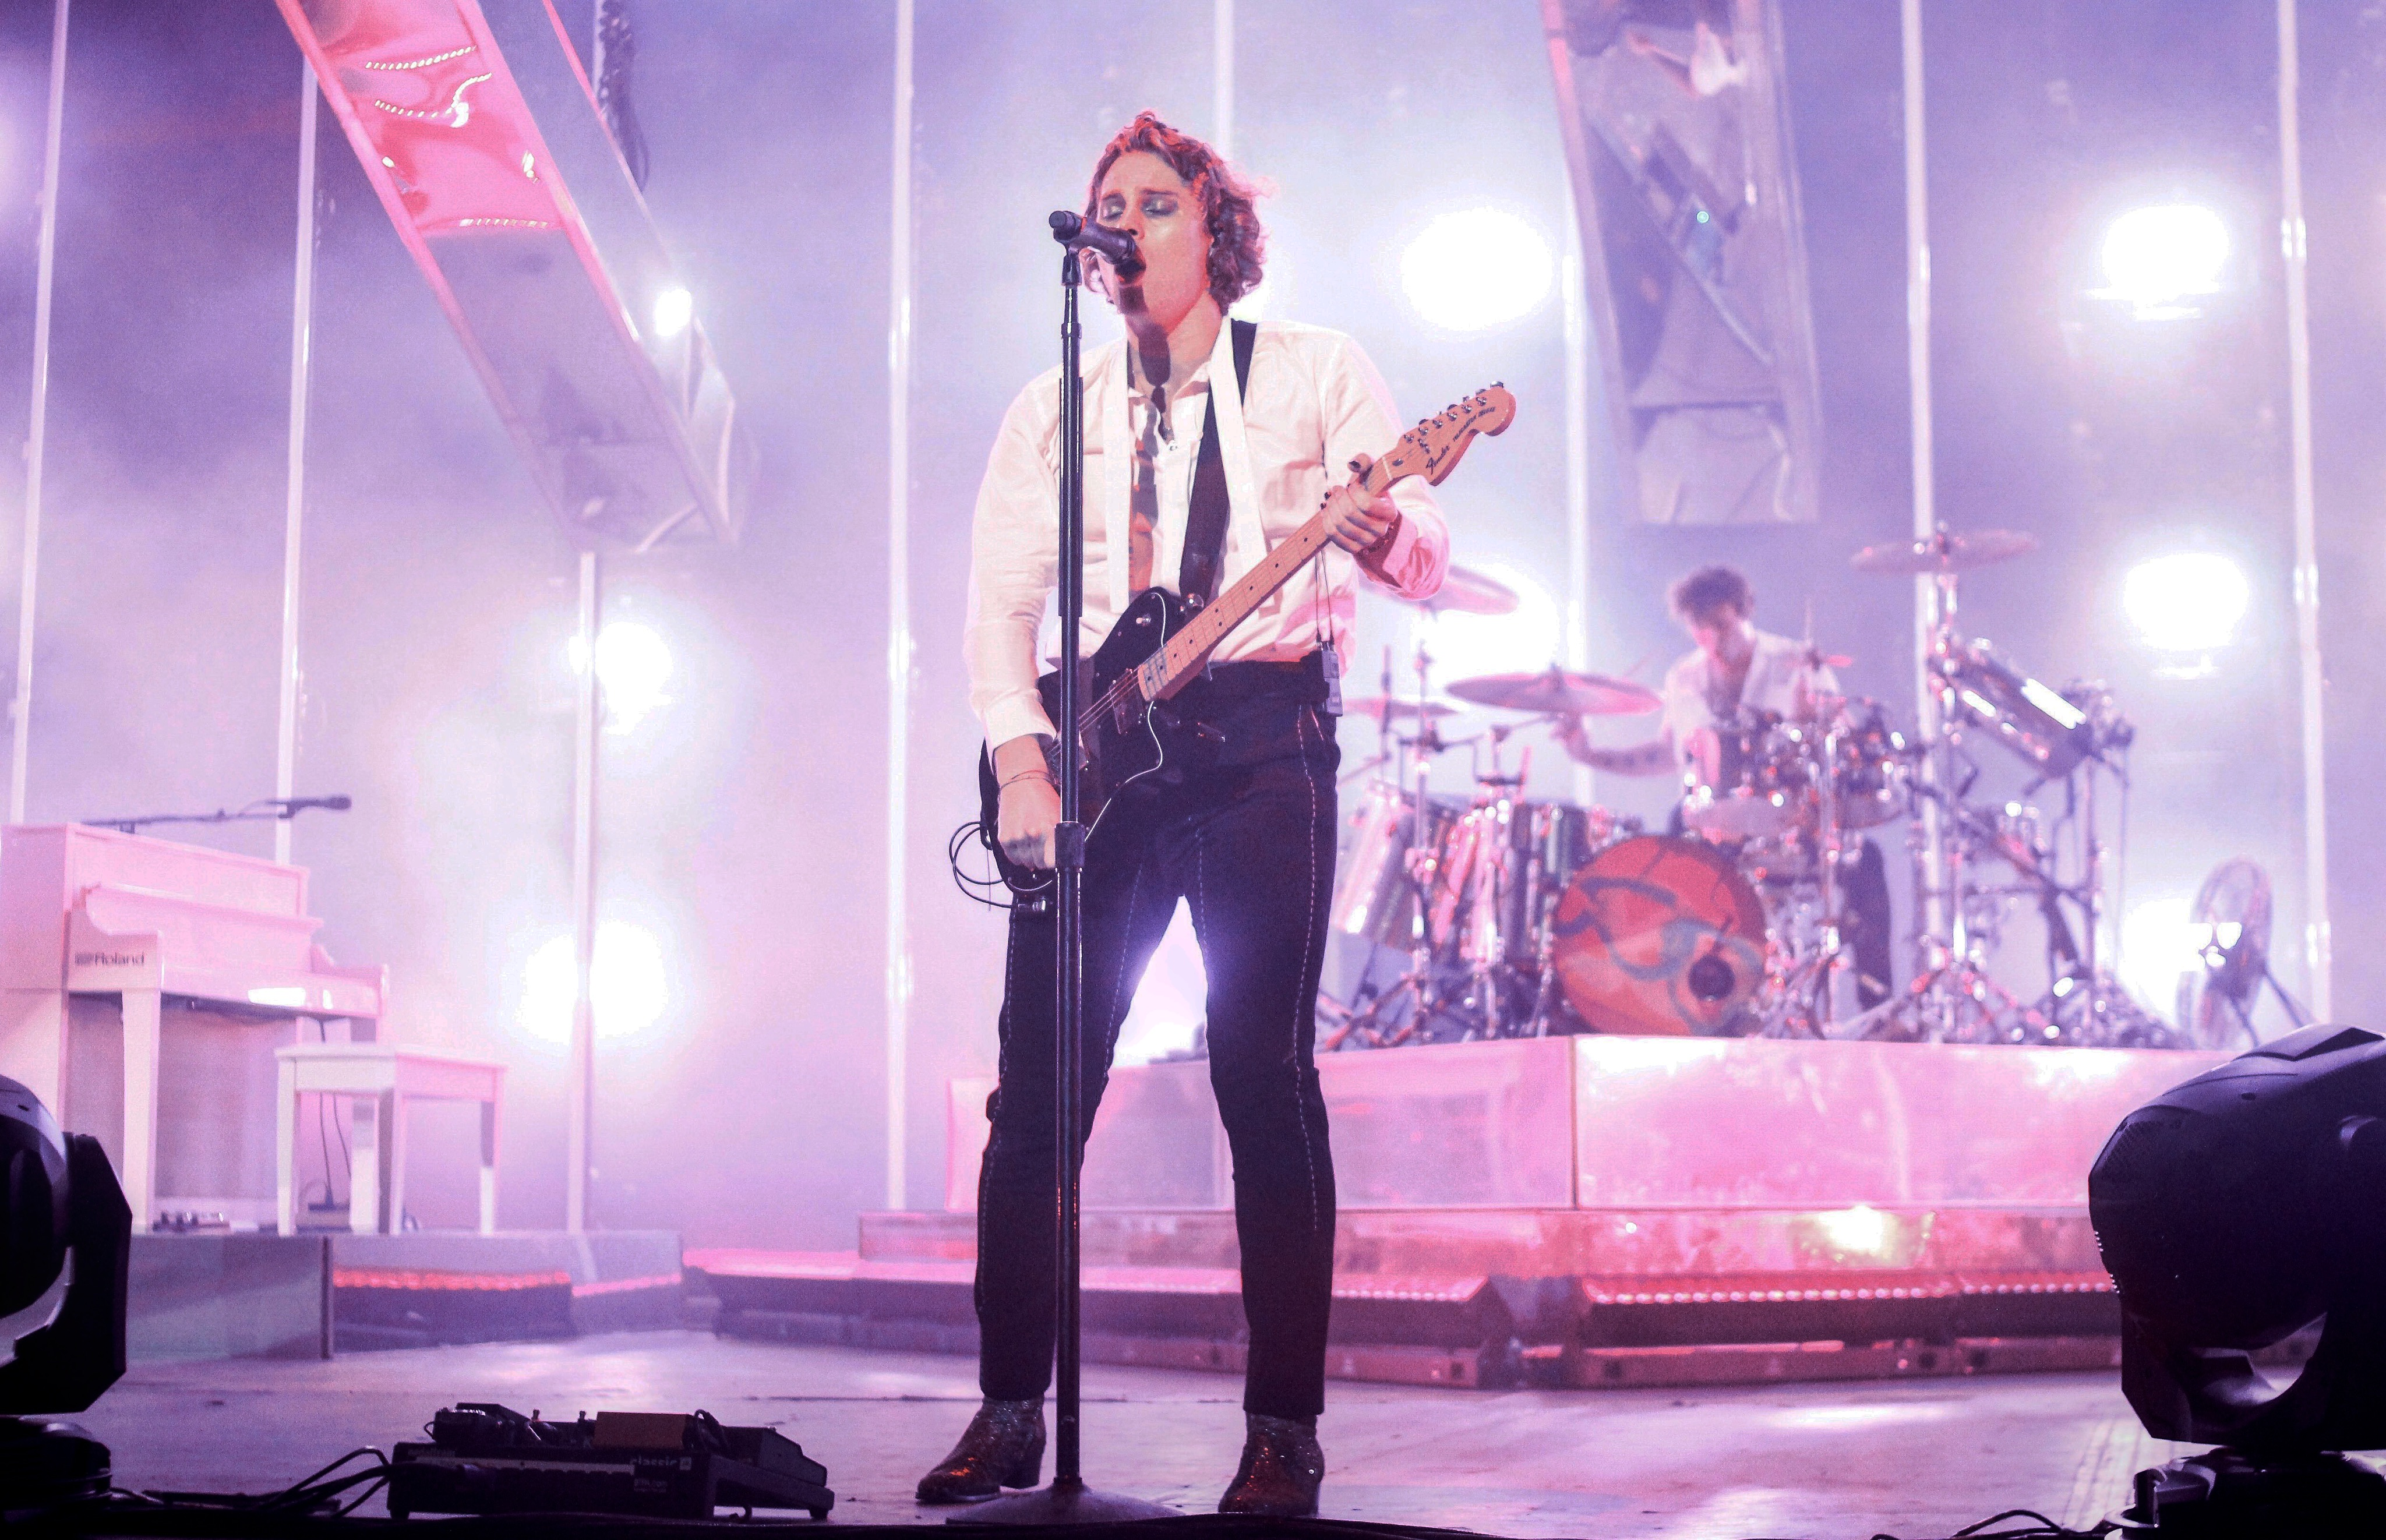 Photos: 5 Seconds of Summer - PNC Bank Arts Center | Stars